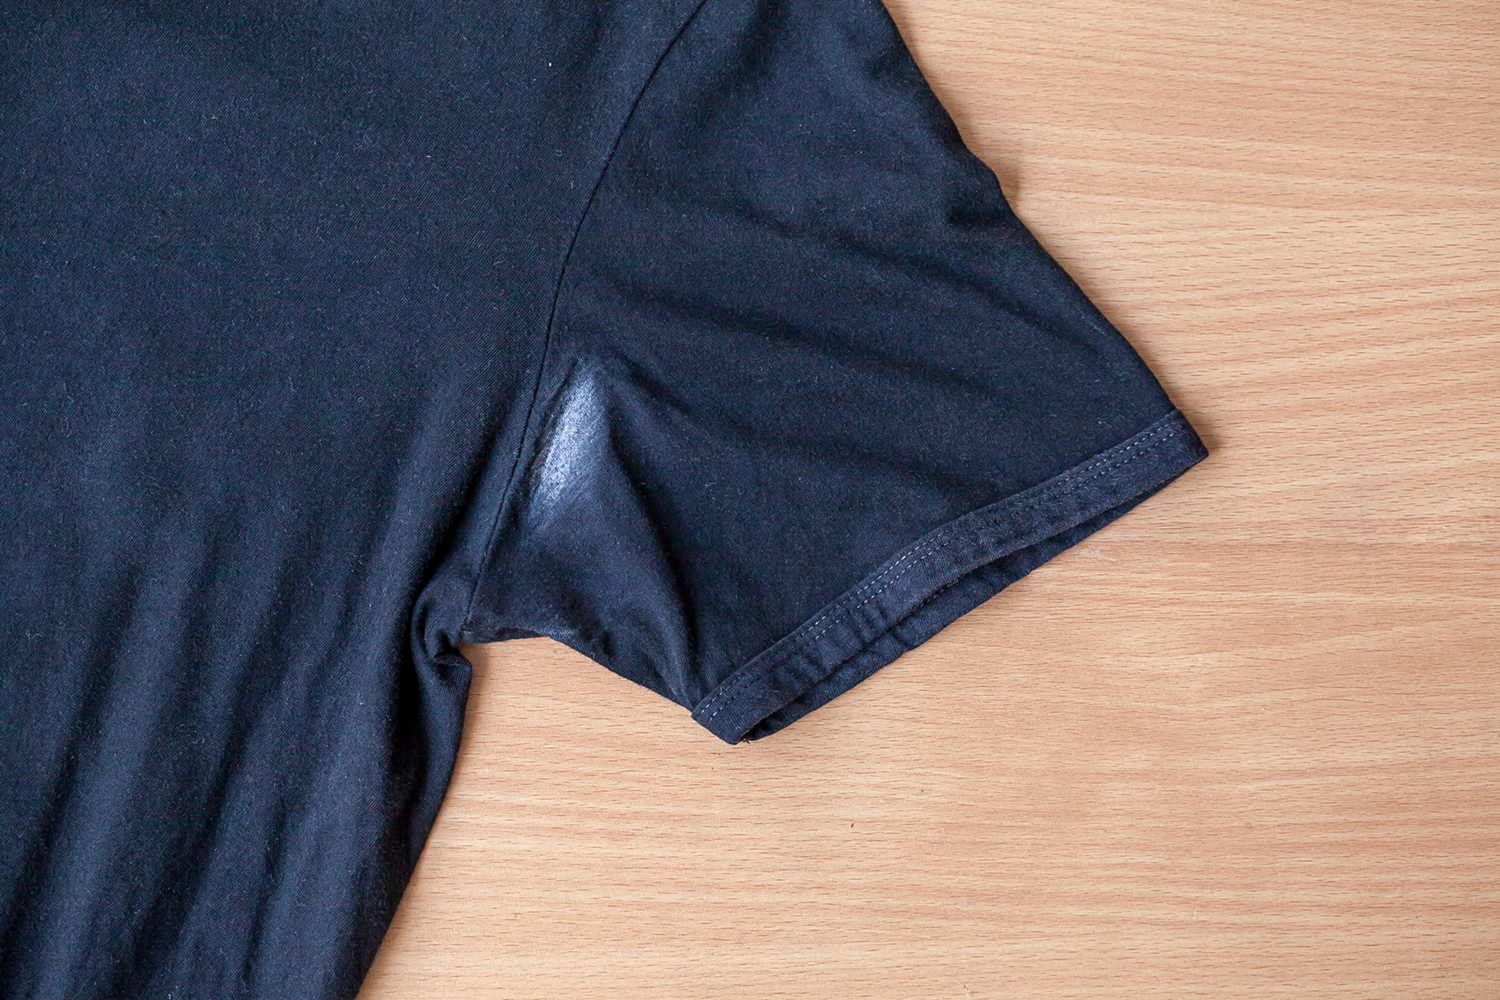 Use Dryer Sheets To Remove Deodorant Stains From Restaurant Uniforms